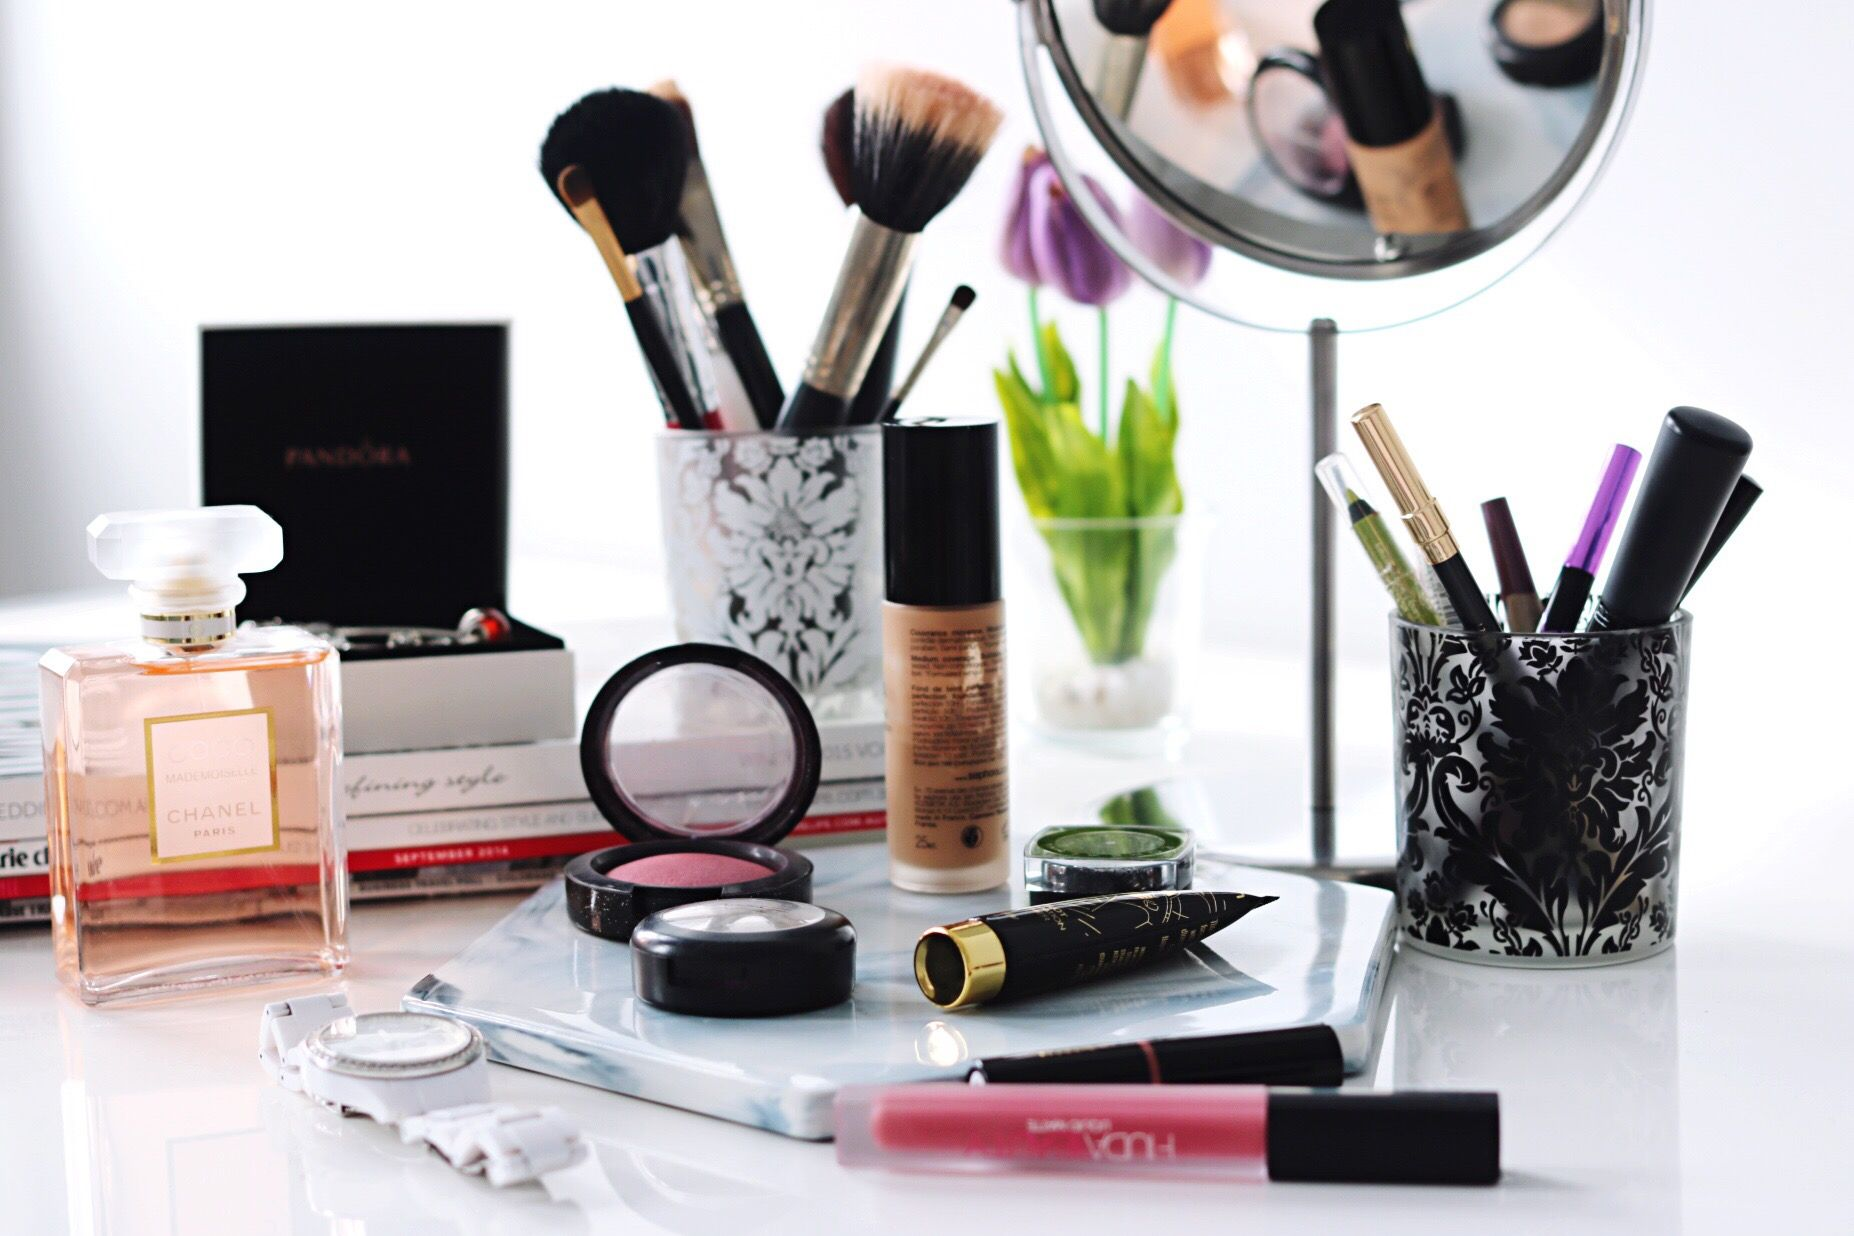 beauty makeup table walmart brands favorite vegan which getty them close expiration dates gettyimages